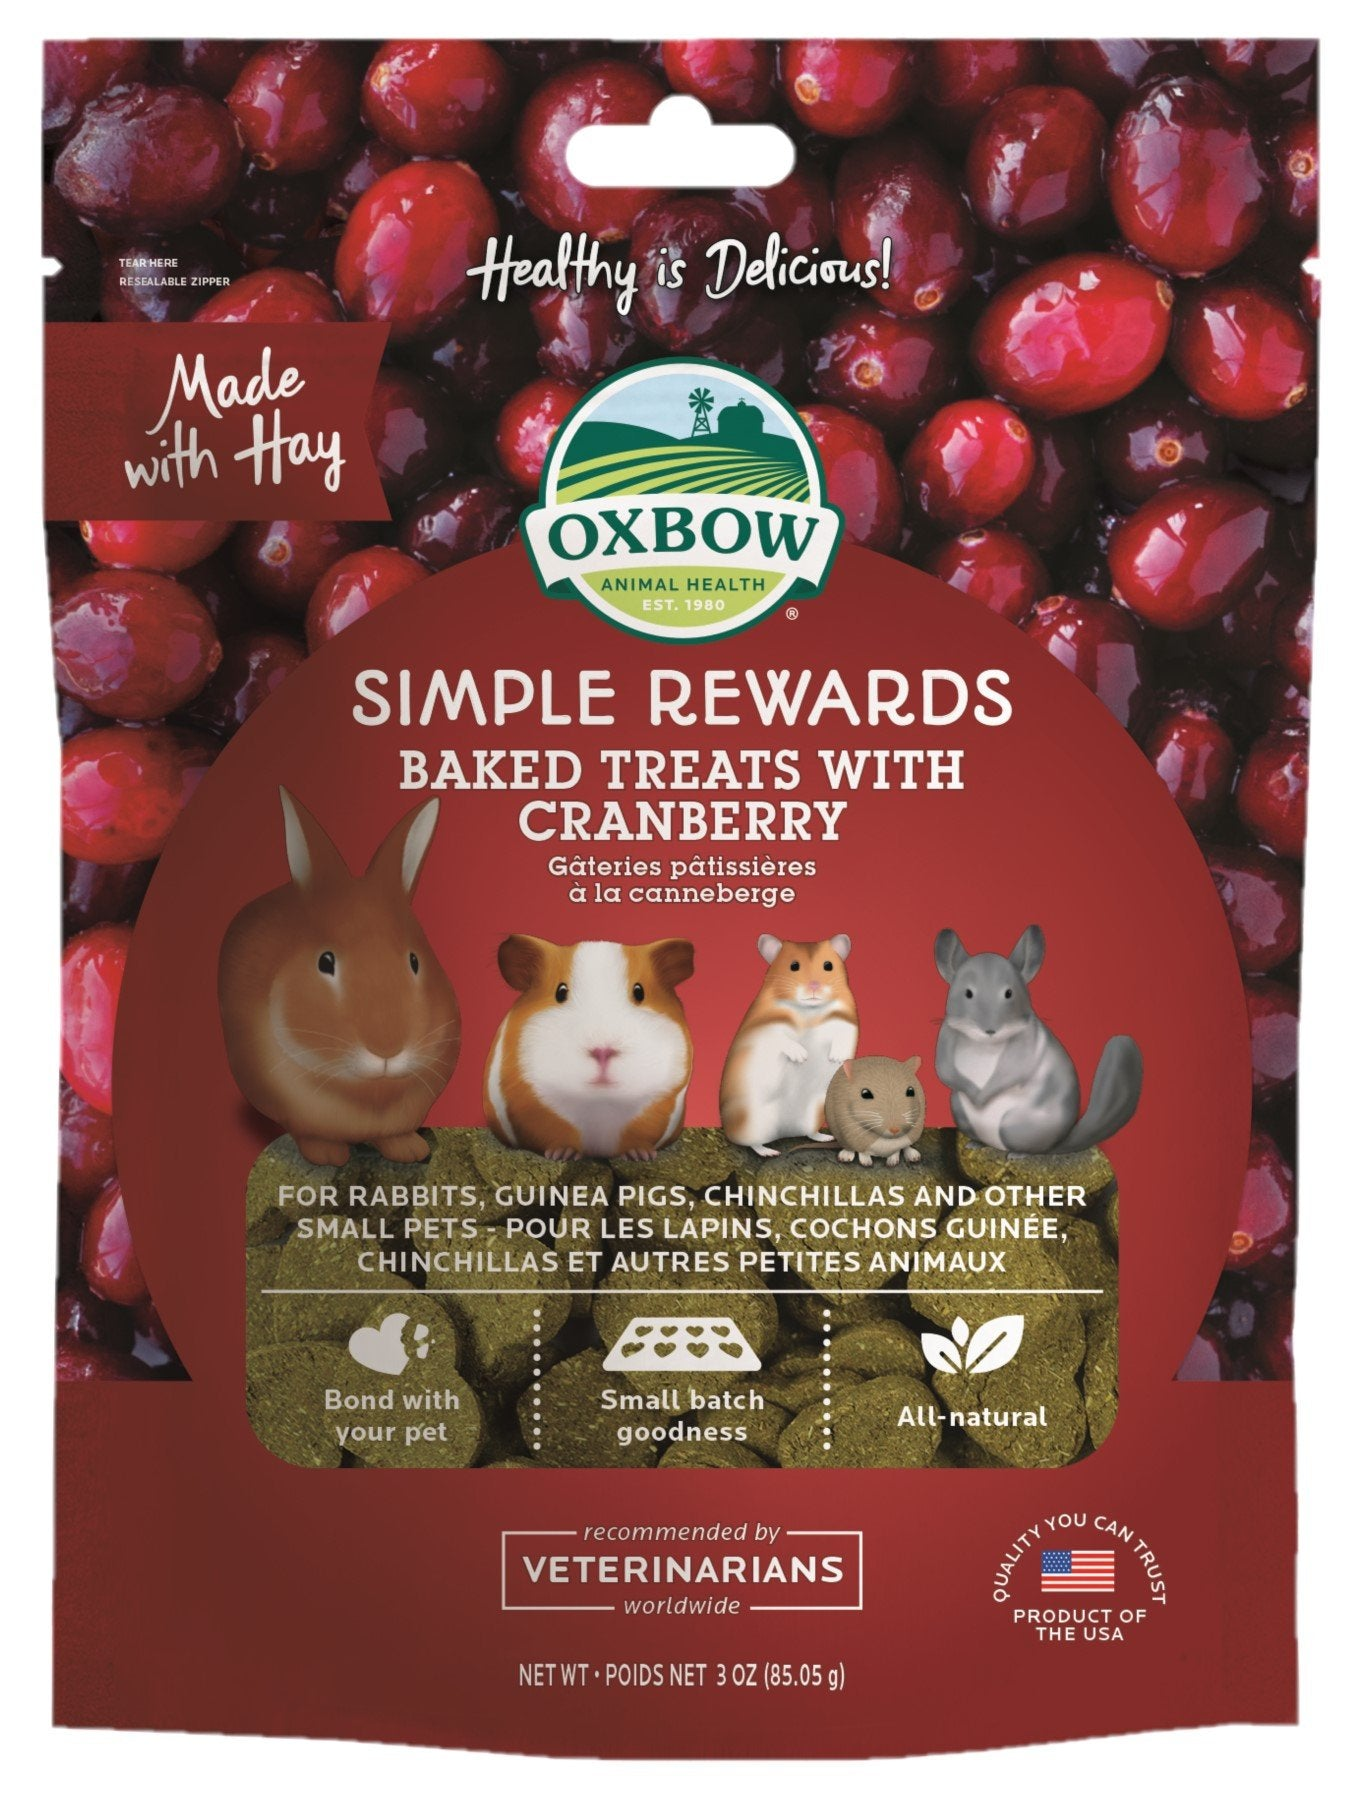 Oxbow Simple Rewards Cranberry 85g - RSPCA VIC